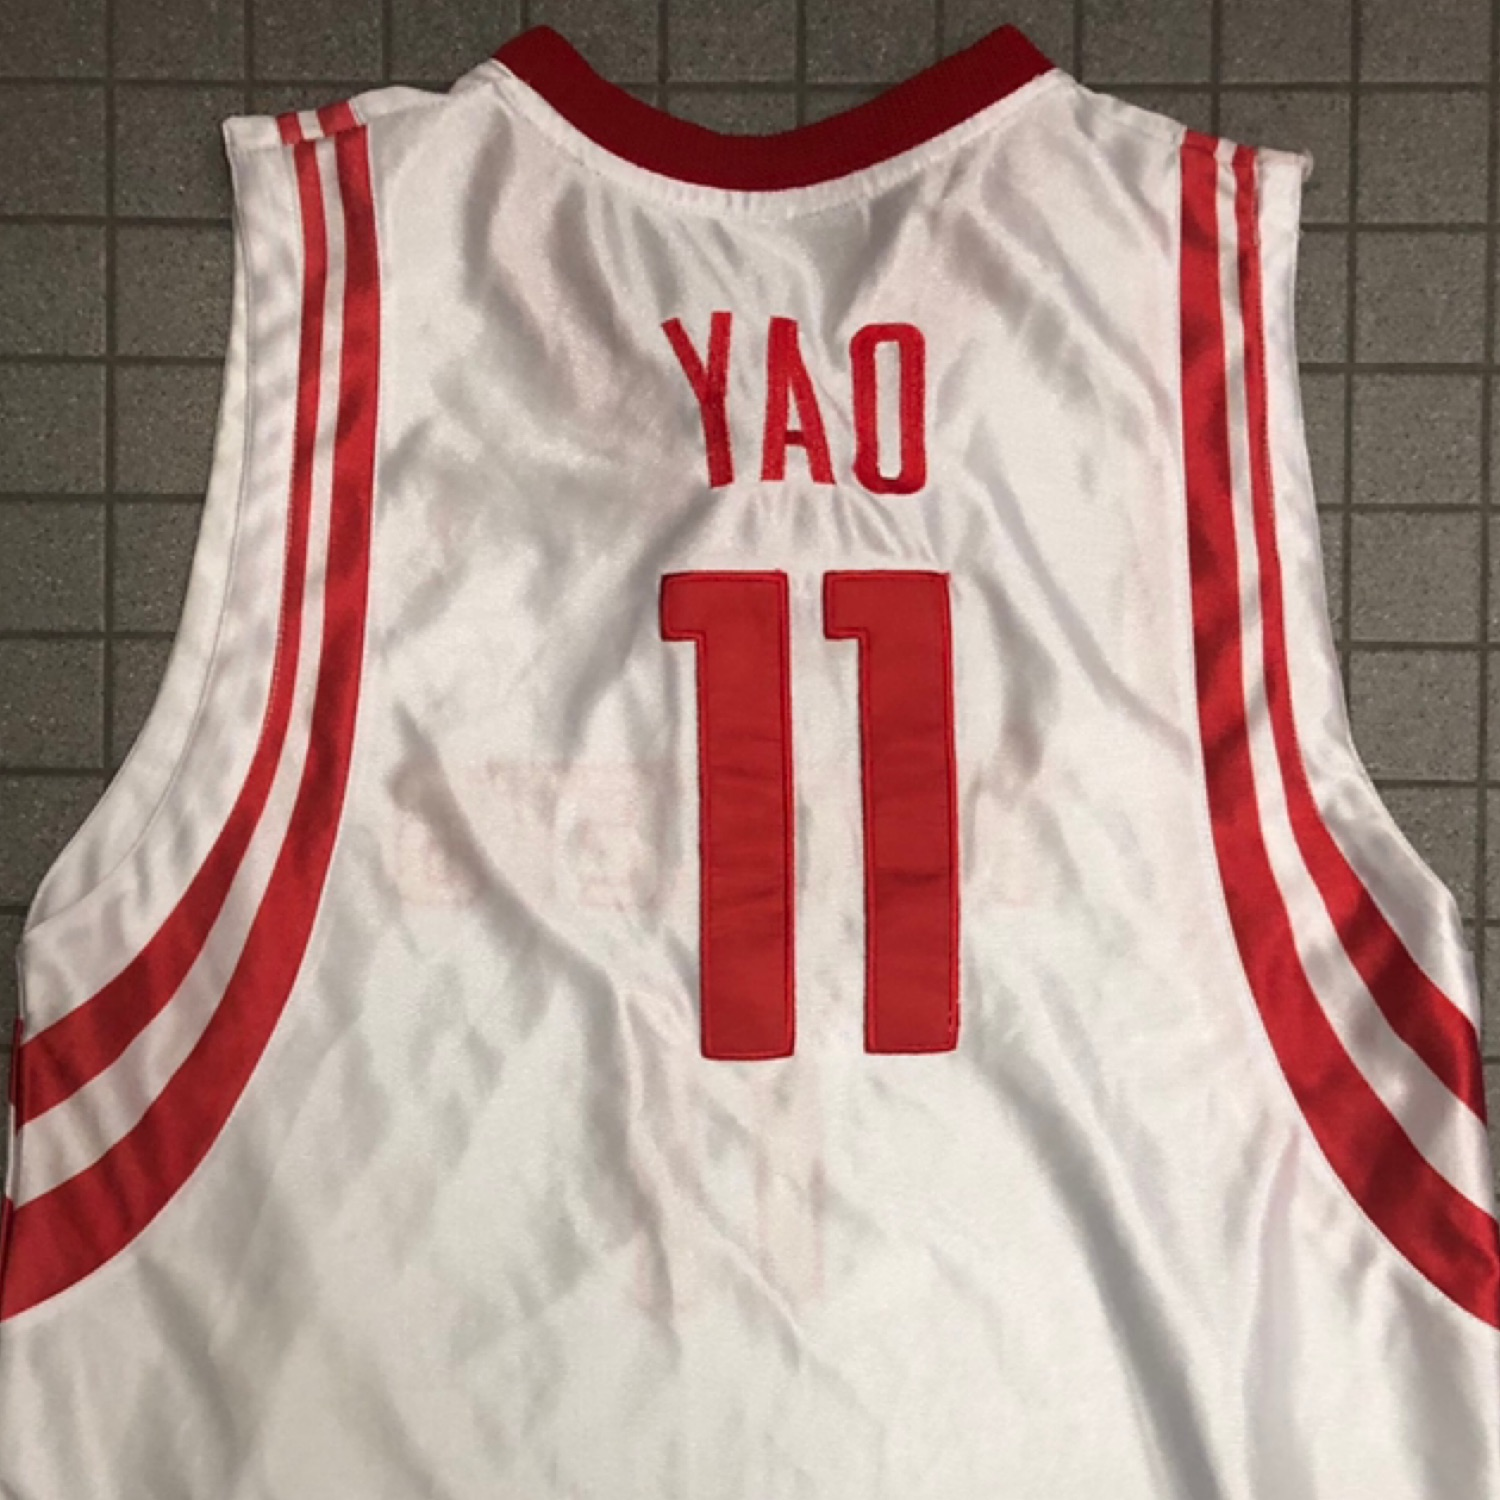 competitive price 9a6f4 90abc Yao Ming Jersey Basketball Vintage